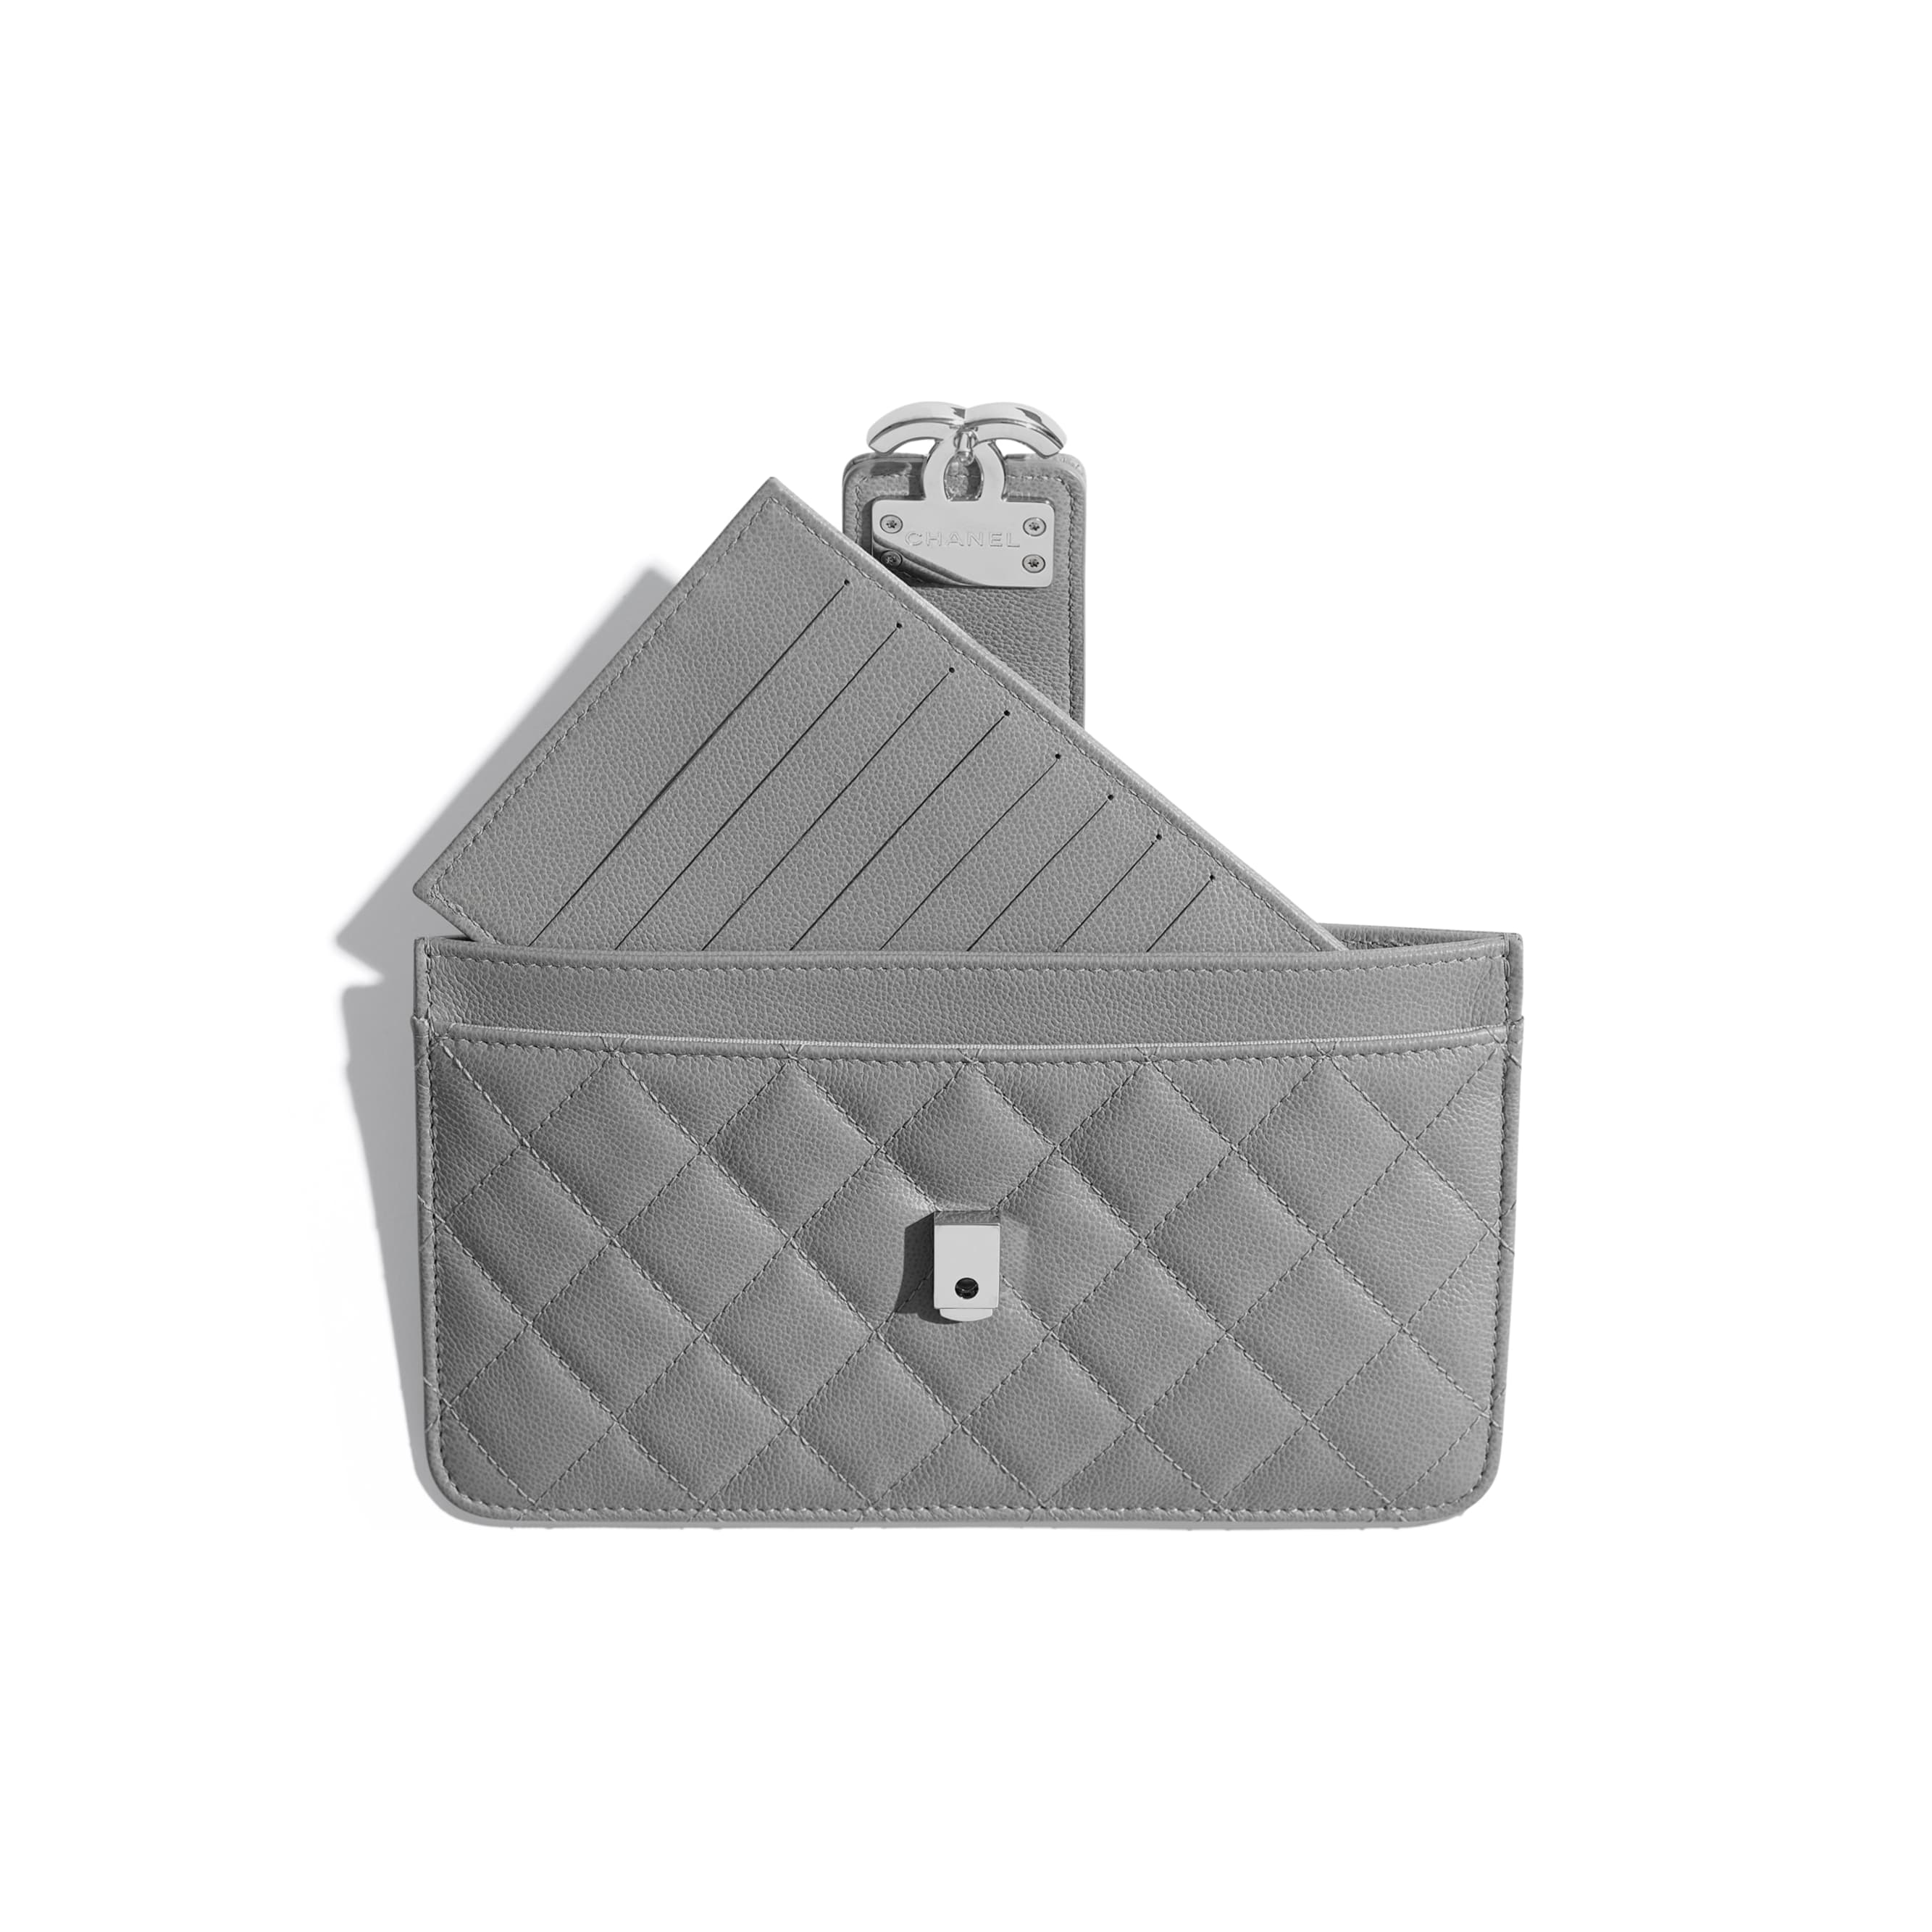 Pouch - Gray - Grained Calfskin & Silver-Tone Metal - CHANEL - Other view - see standard sized version